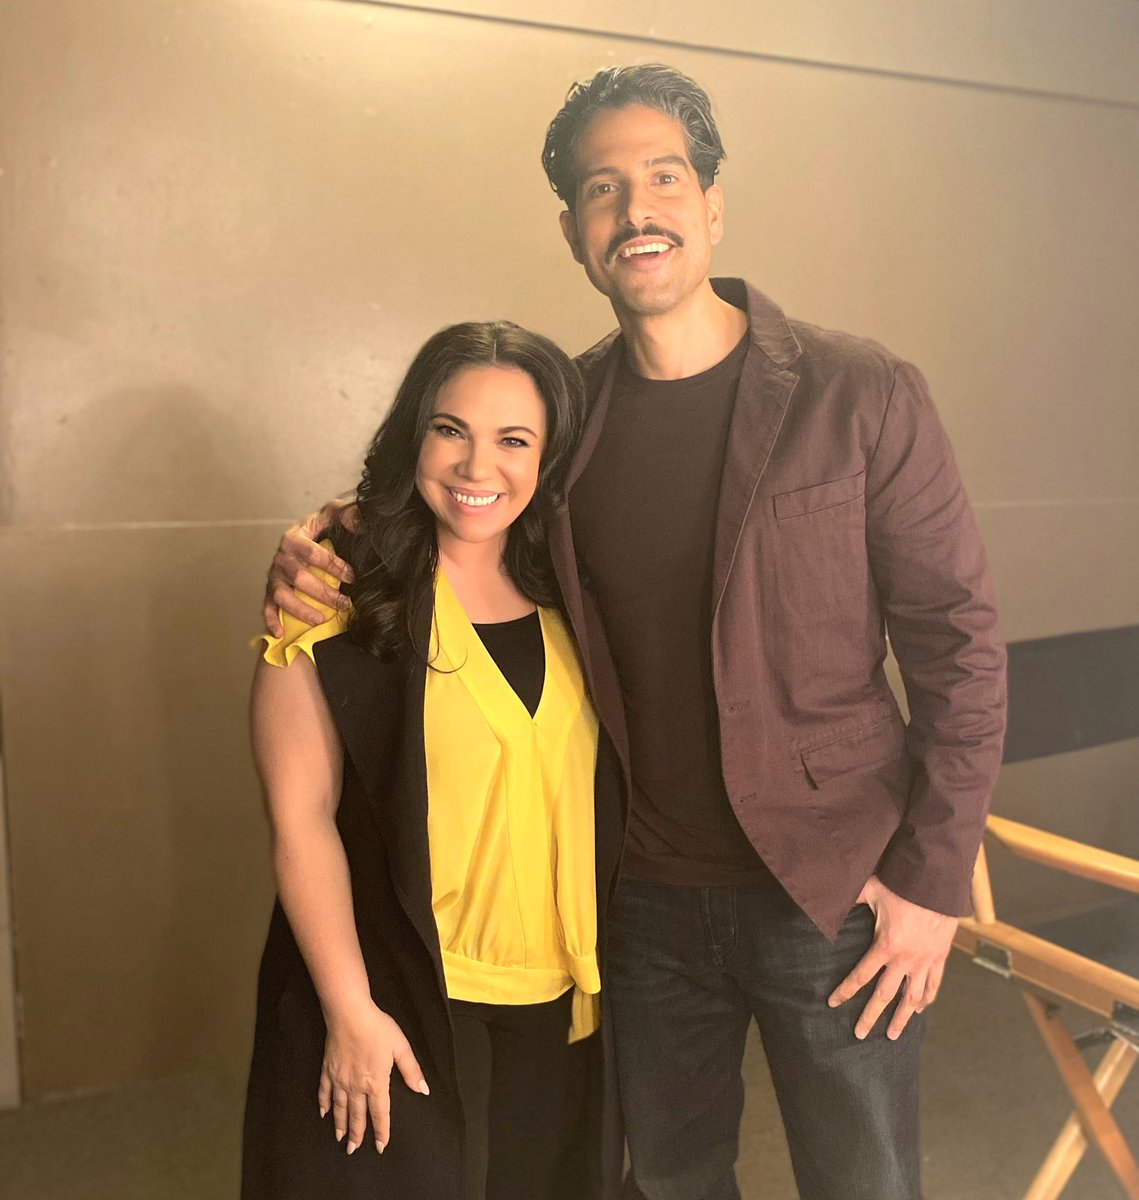 And the awesome guest stars just keep on coming... Welcome @_Adam_Rodriguez to the @OneDayAtATime fam ❤️